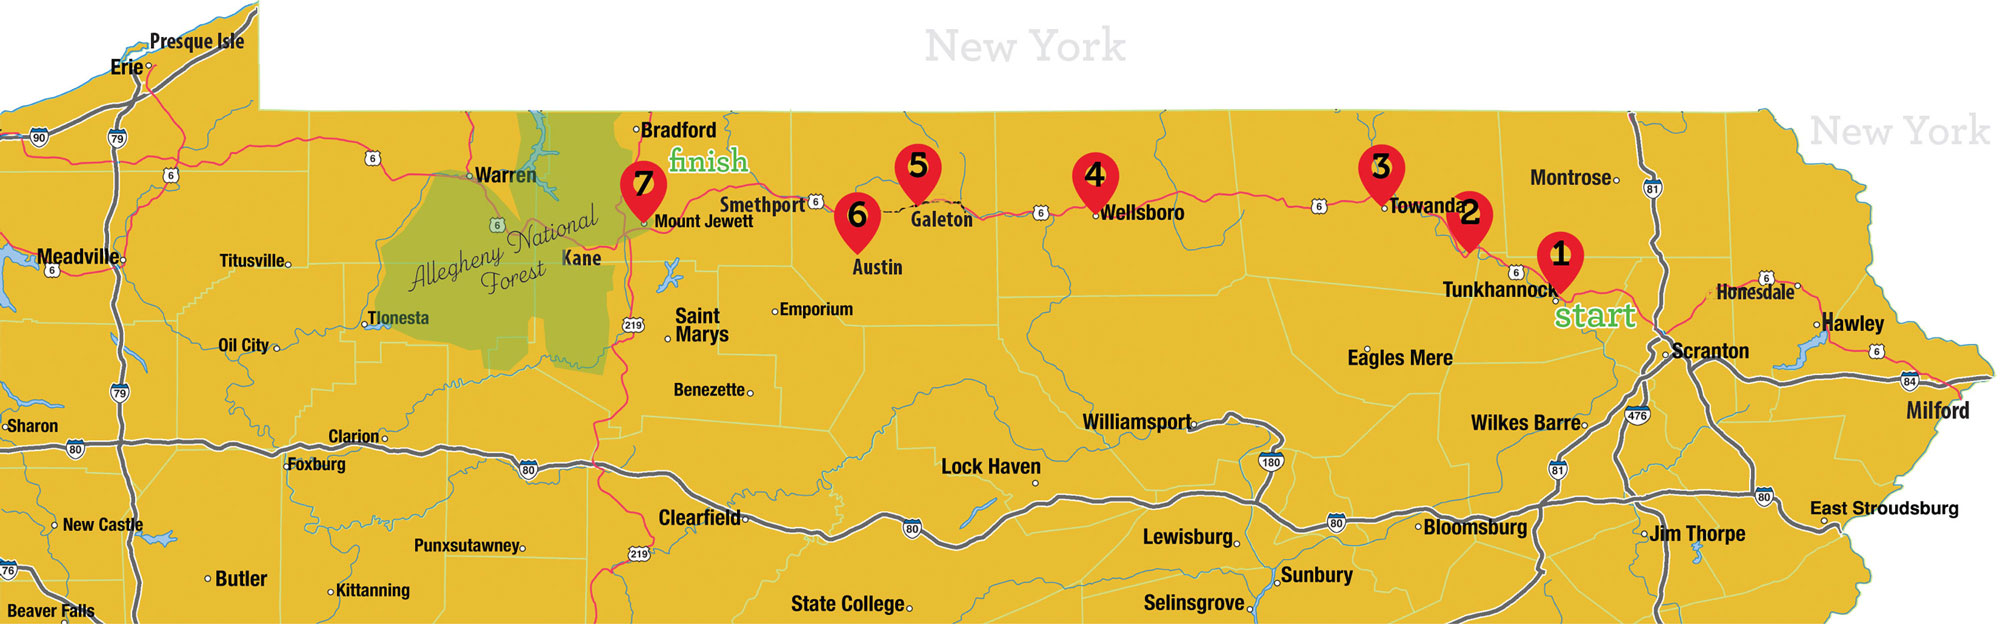 Route 6 Road Trip Map